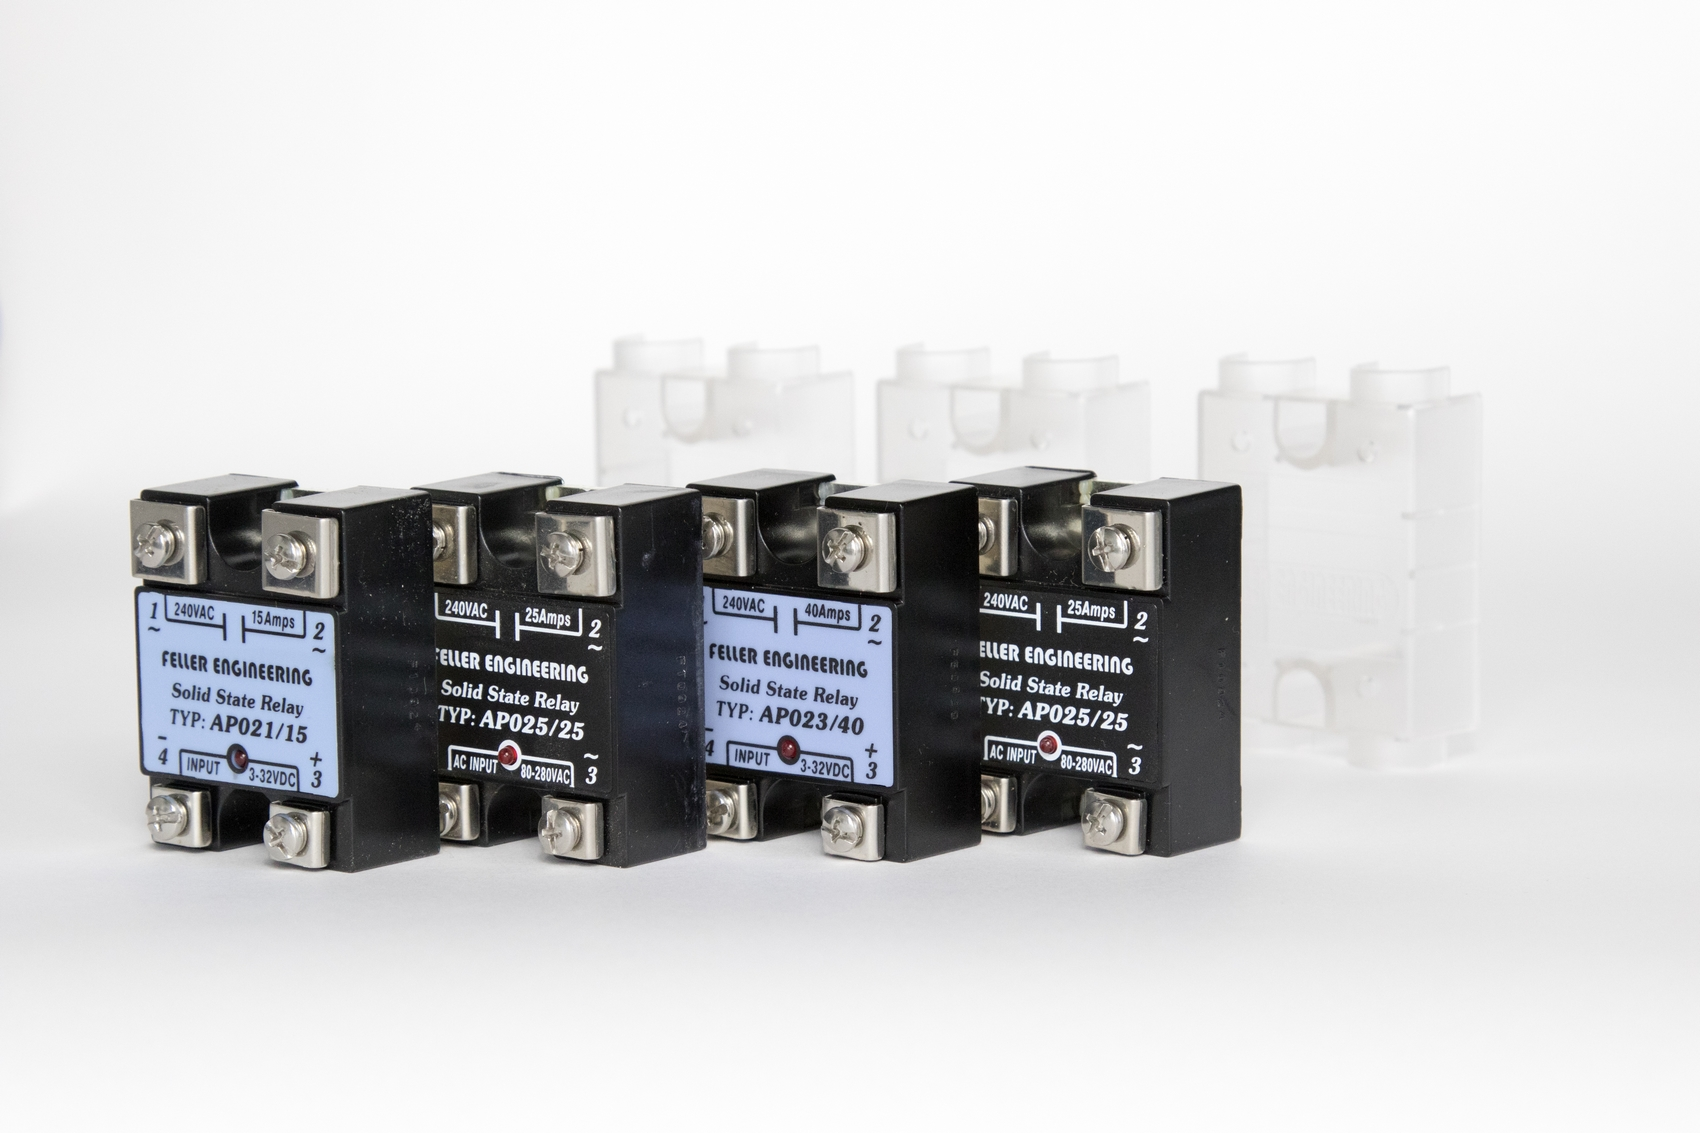 Solid State Relays Feller Engineering Gmbh Relay Working It Allows Very Fast Switching Operations And Thus Enables The Full Utilisation Of Art Technology Microprocessor Controlled Temperature